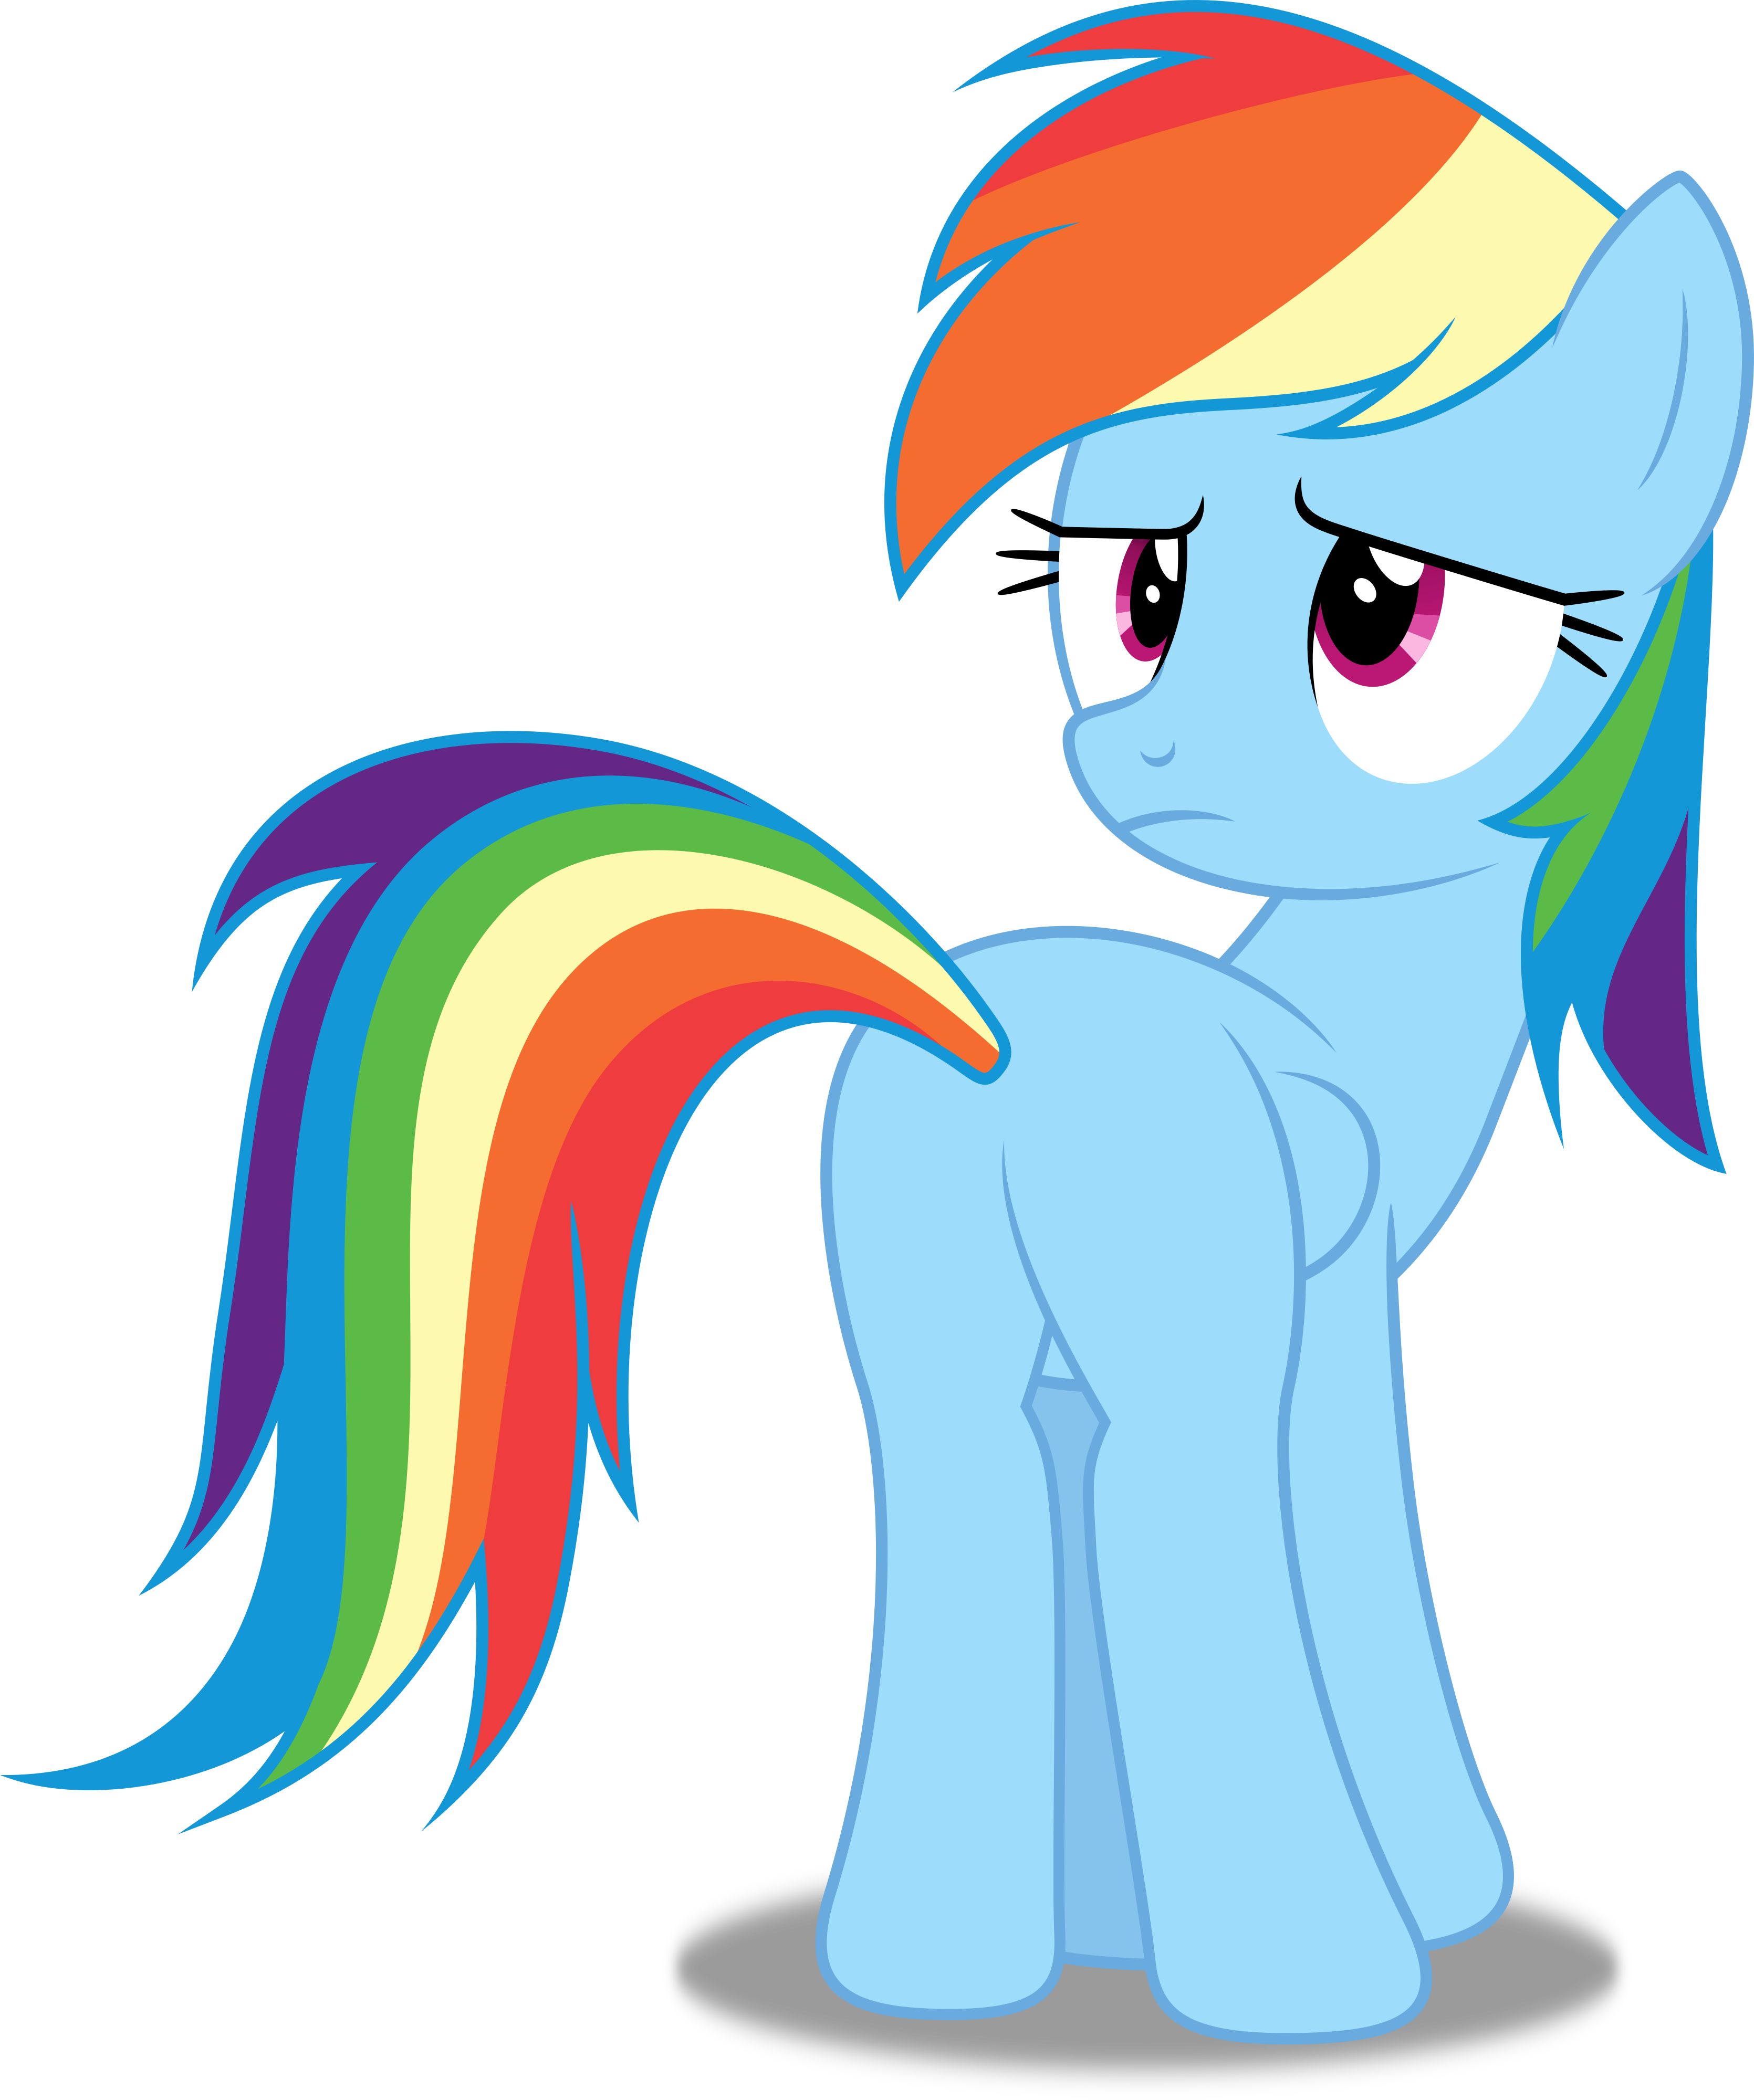 983323 svg available absurd res artistdashiesparkle